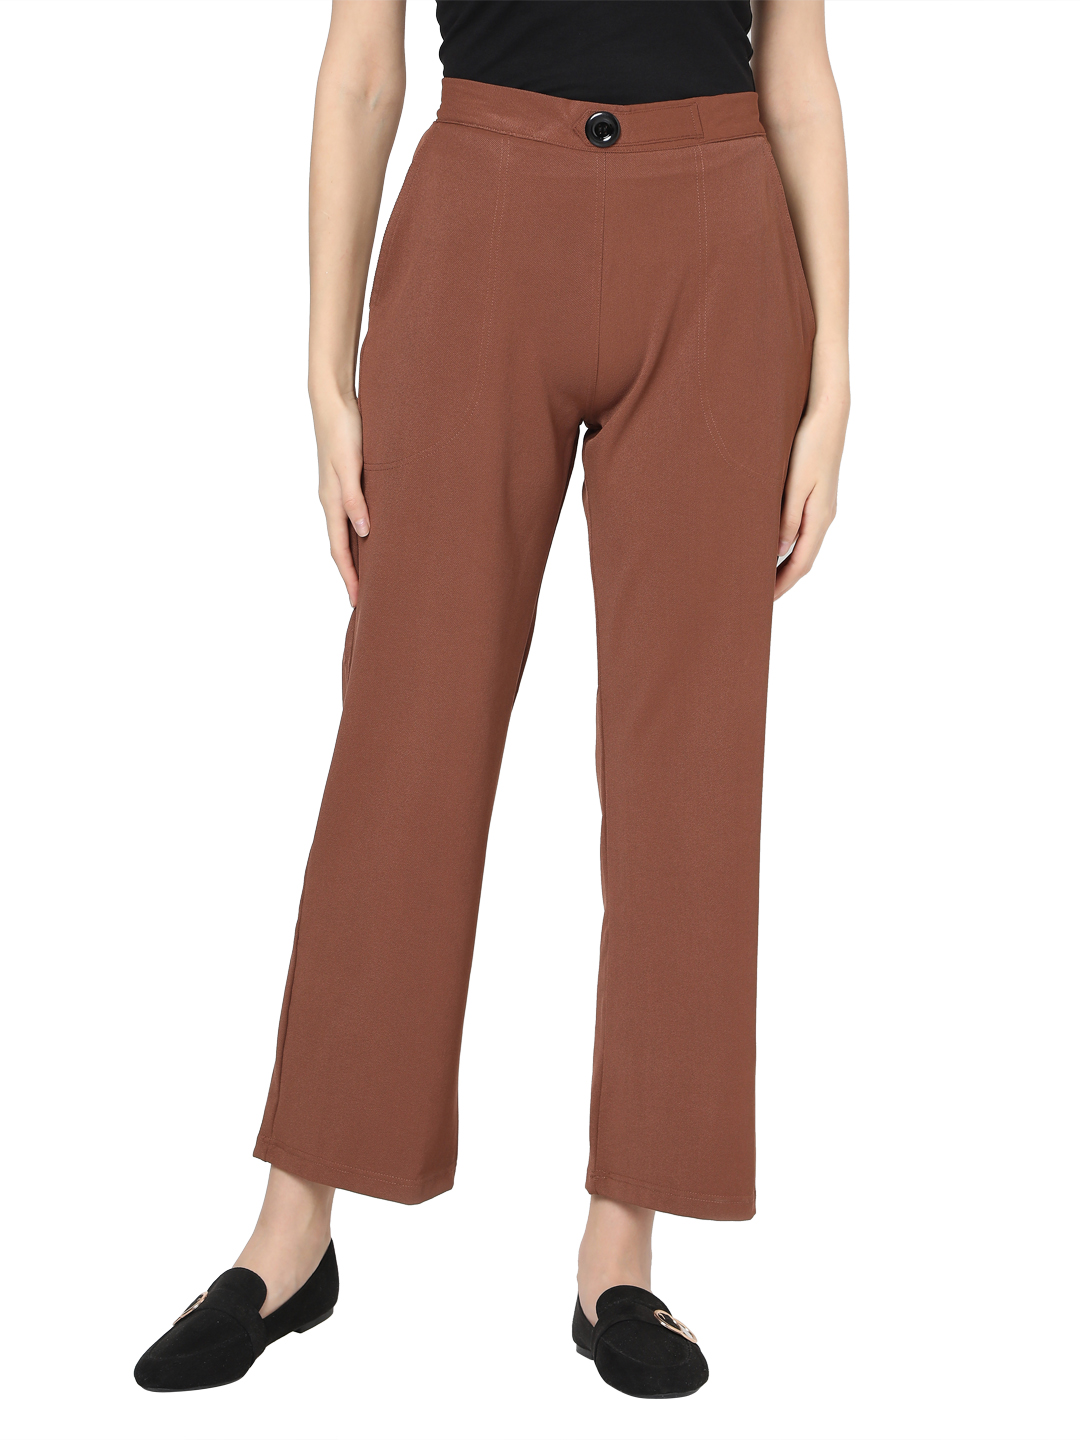 Smarty Pants | Smarty pants women's cotton stretchable brown ankle length flared trouser